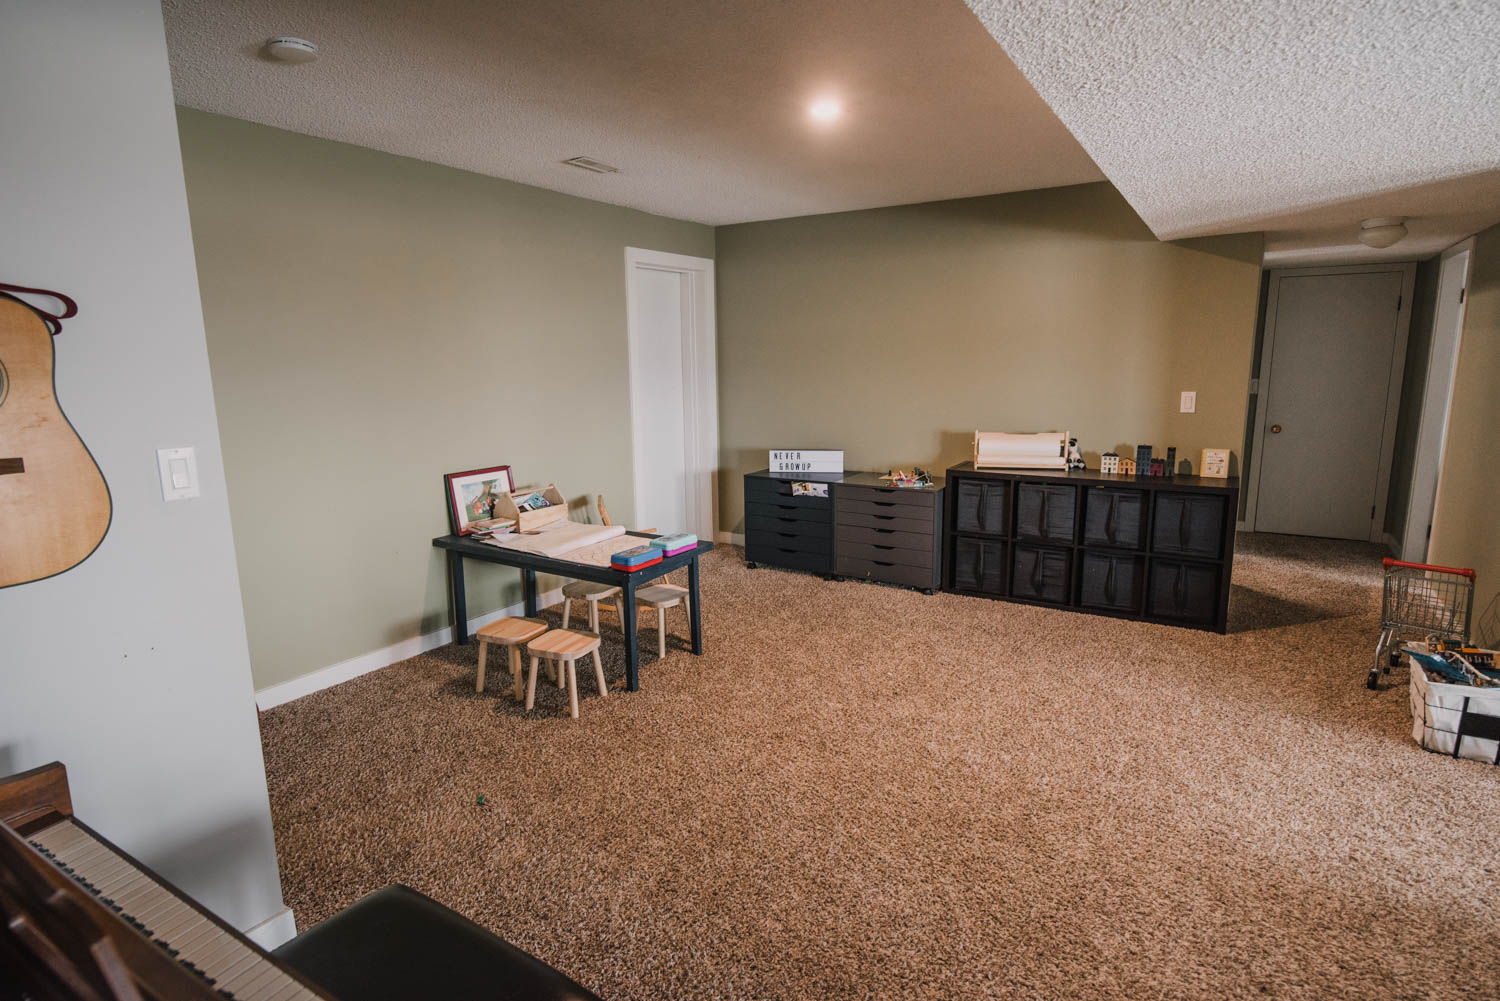 Basement Playroom Remodel Plans